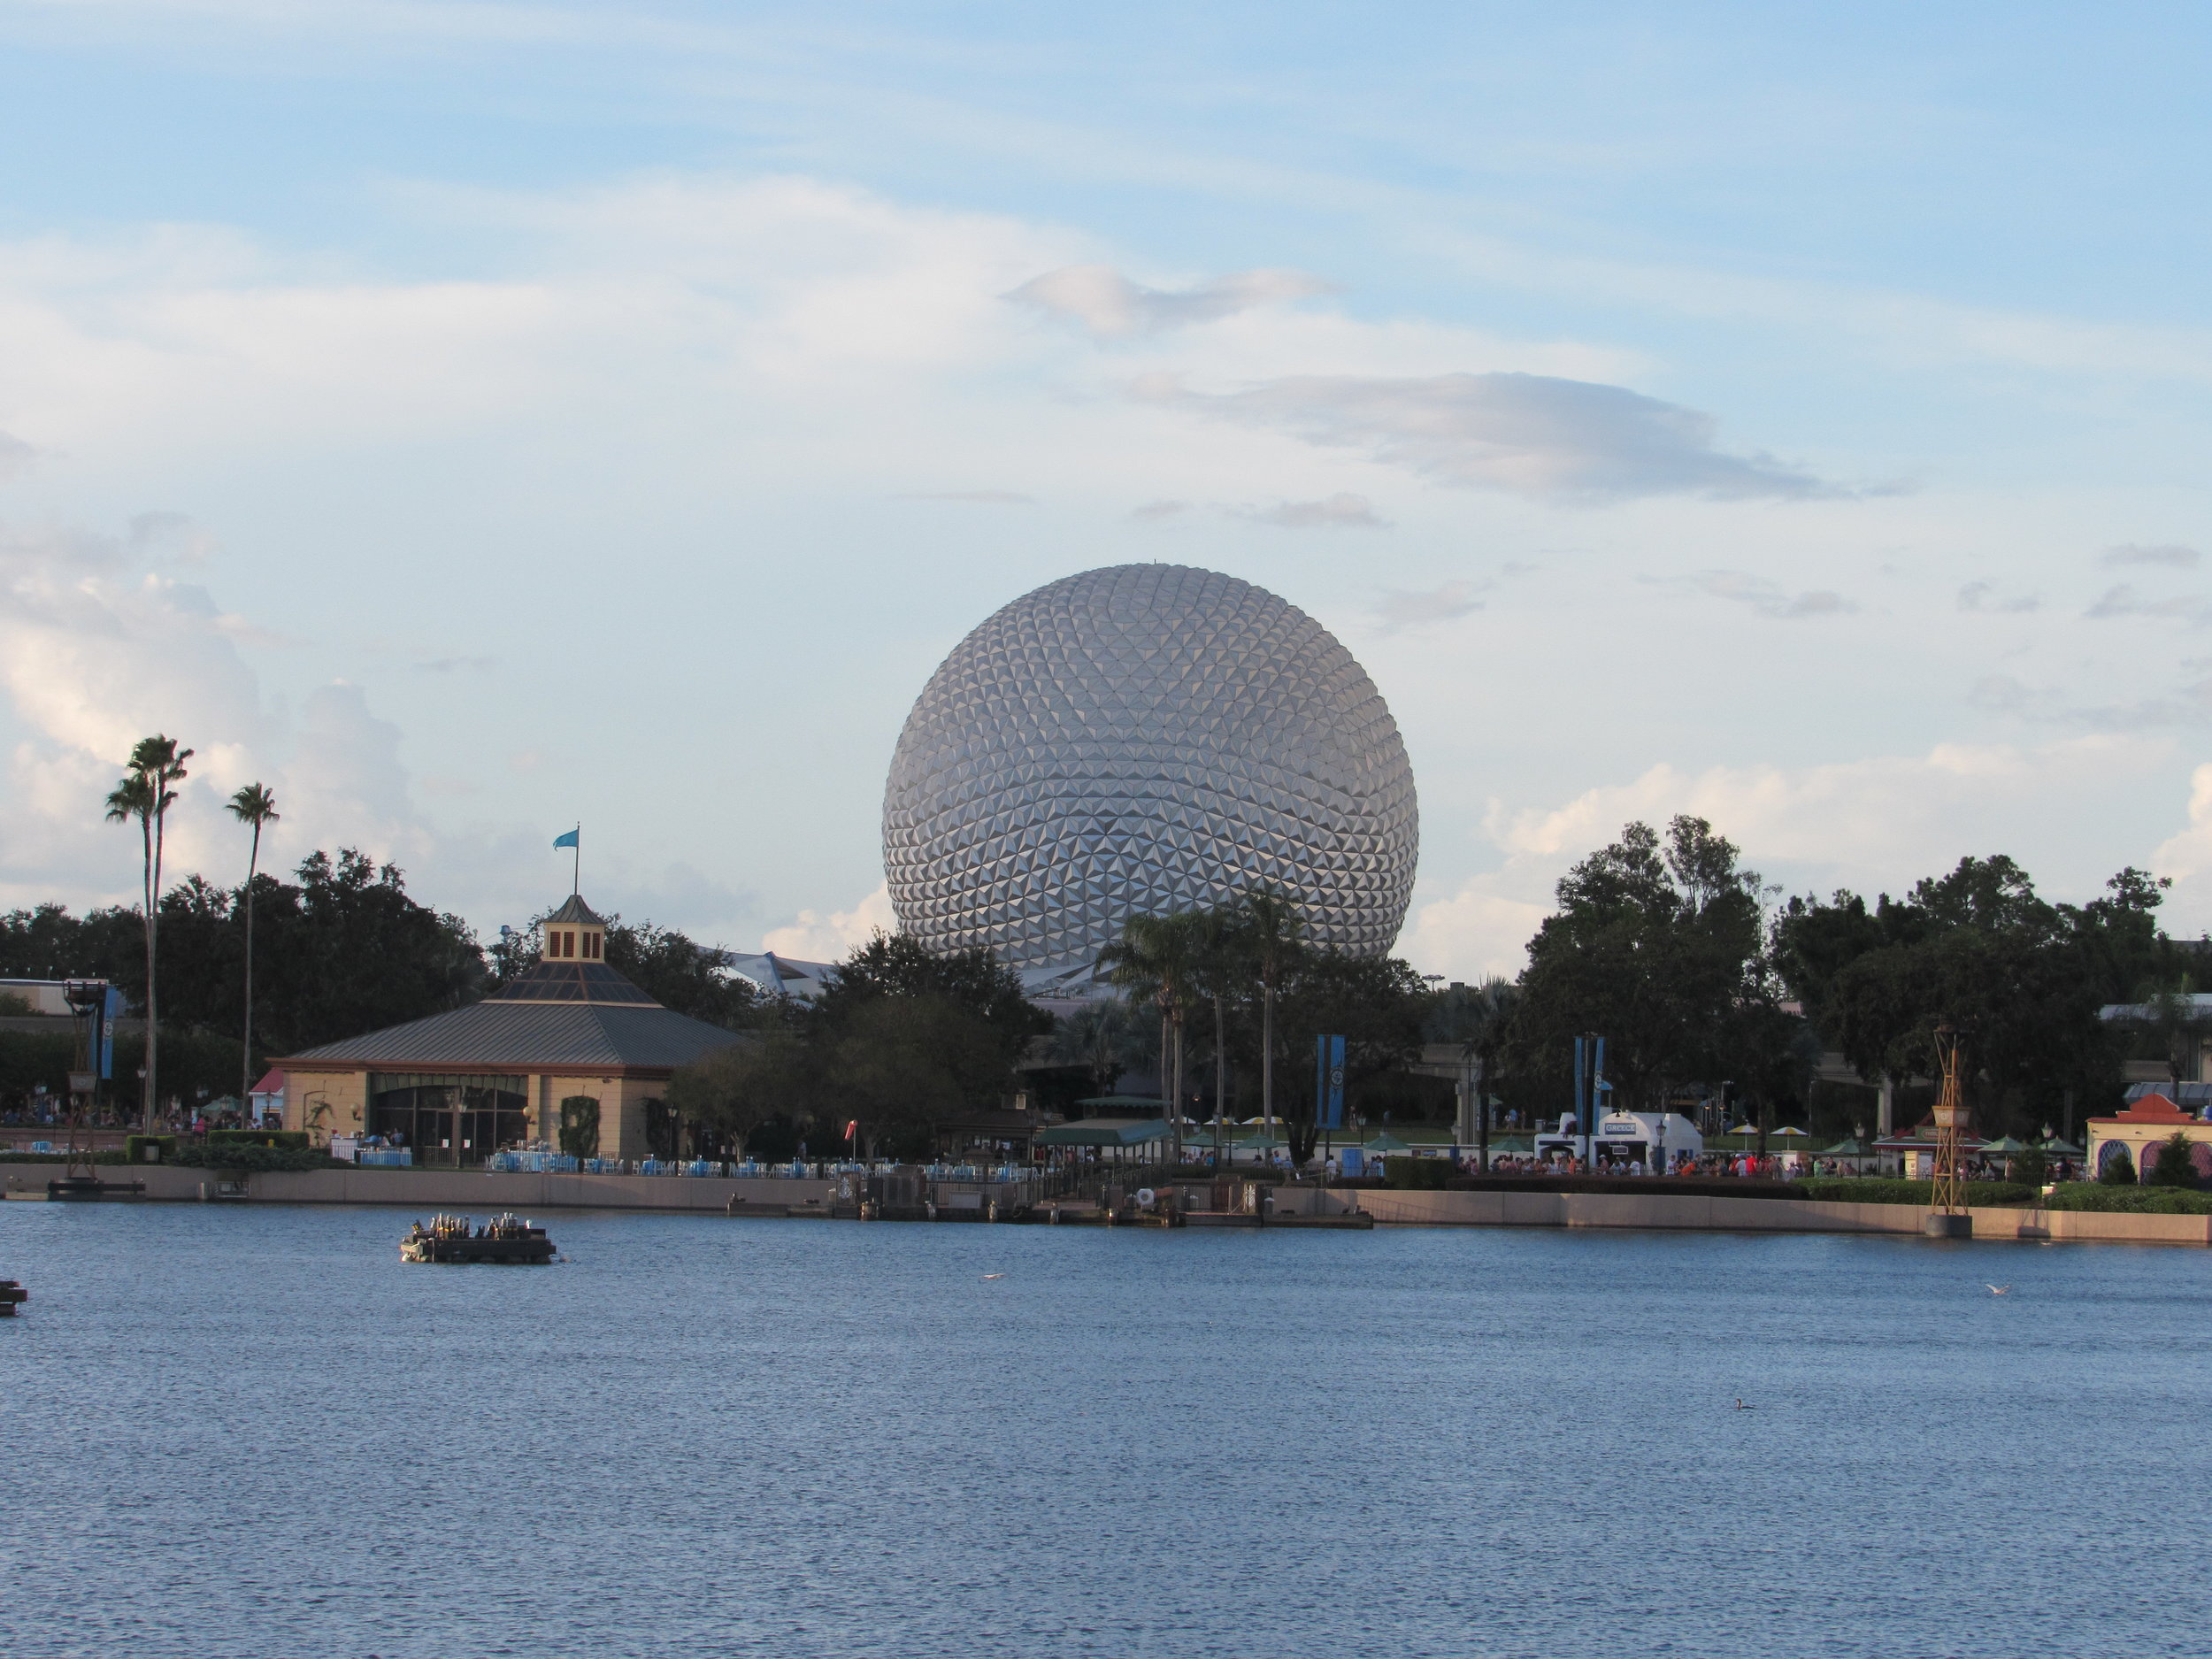 View from the World Showcase